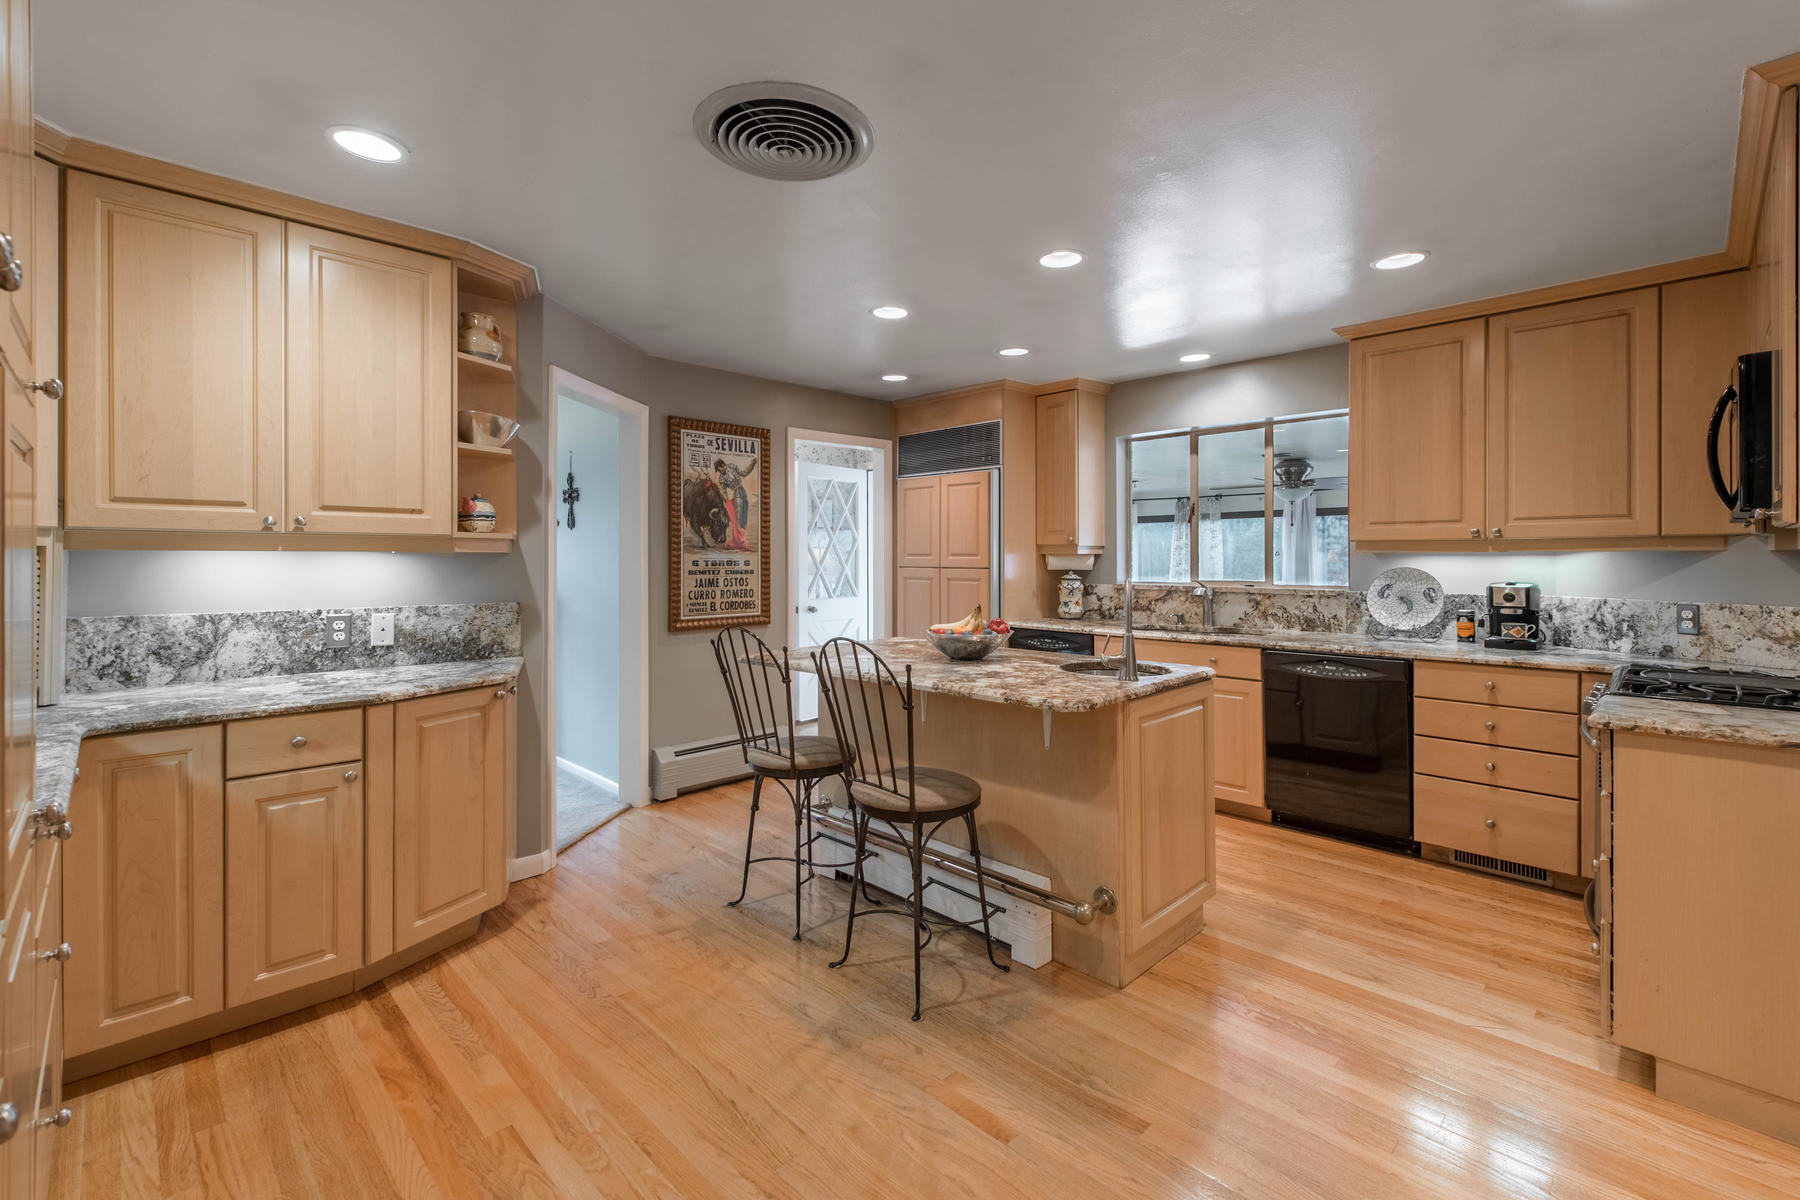 Single Family Home for Active at This fabulous classic ranch is located only a few blocks from Crestmoor Park 401 Monaco Pkwy Denver, Colorado 80220 United States